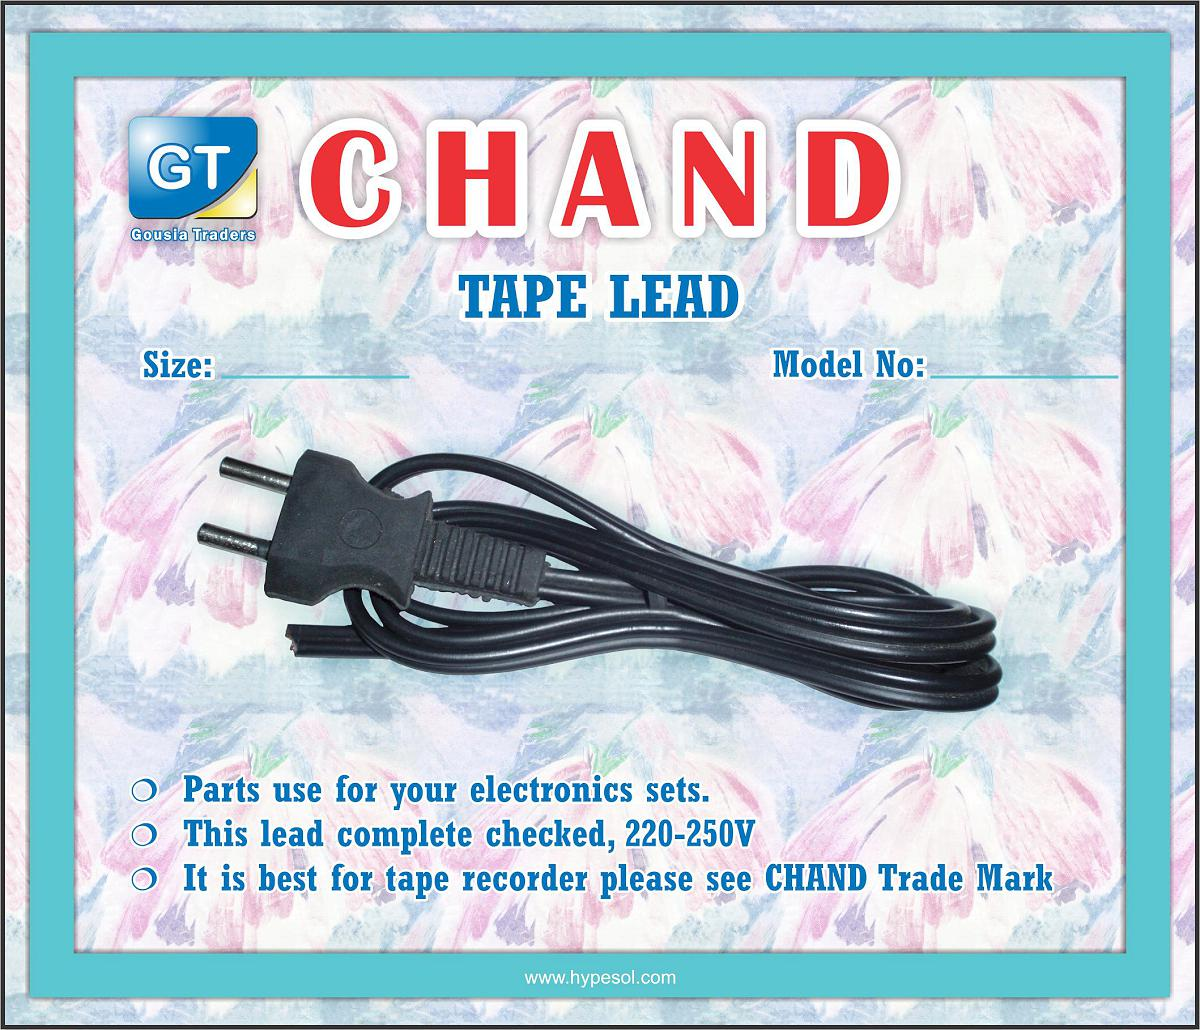 chand-tape-lead